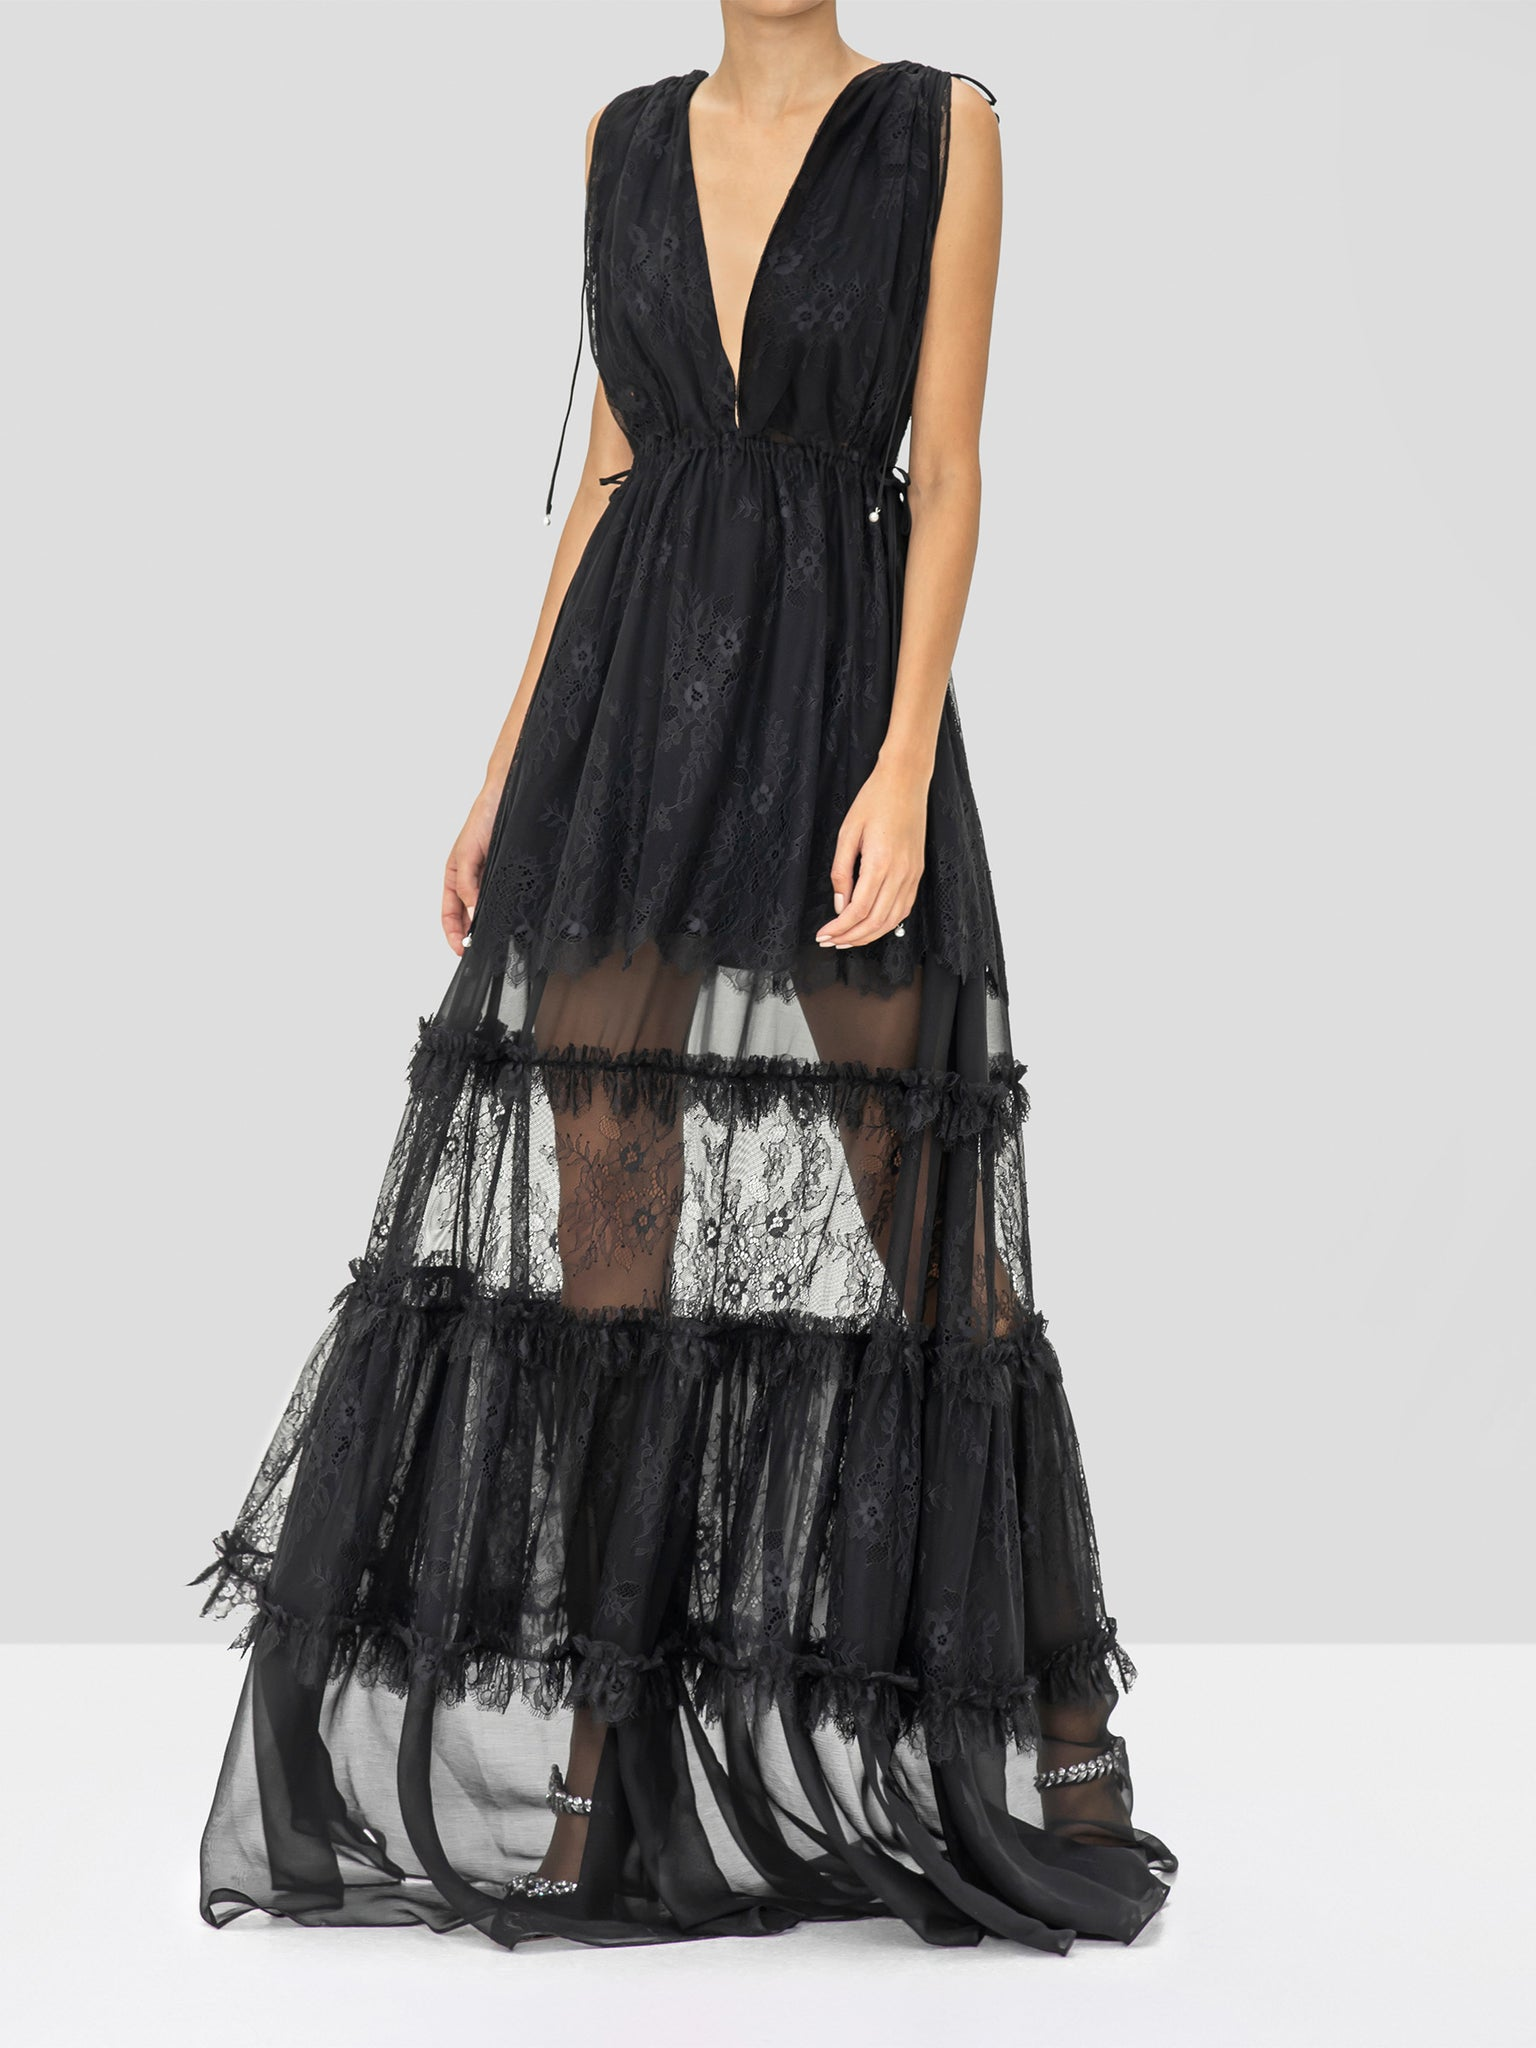 Alexis Umbria Dress in Black from the Holiday 2019 Ready To Wear Collection